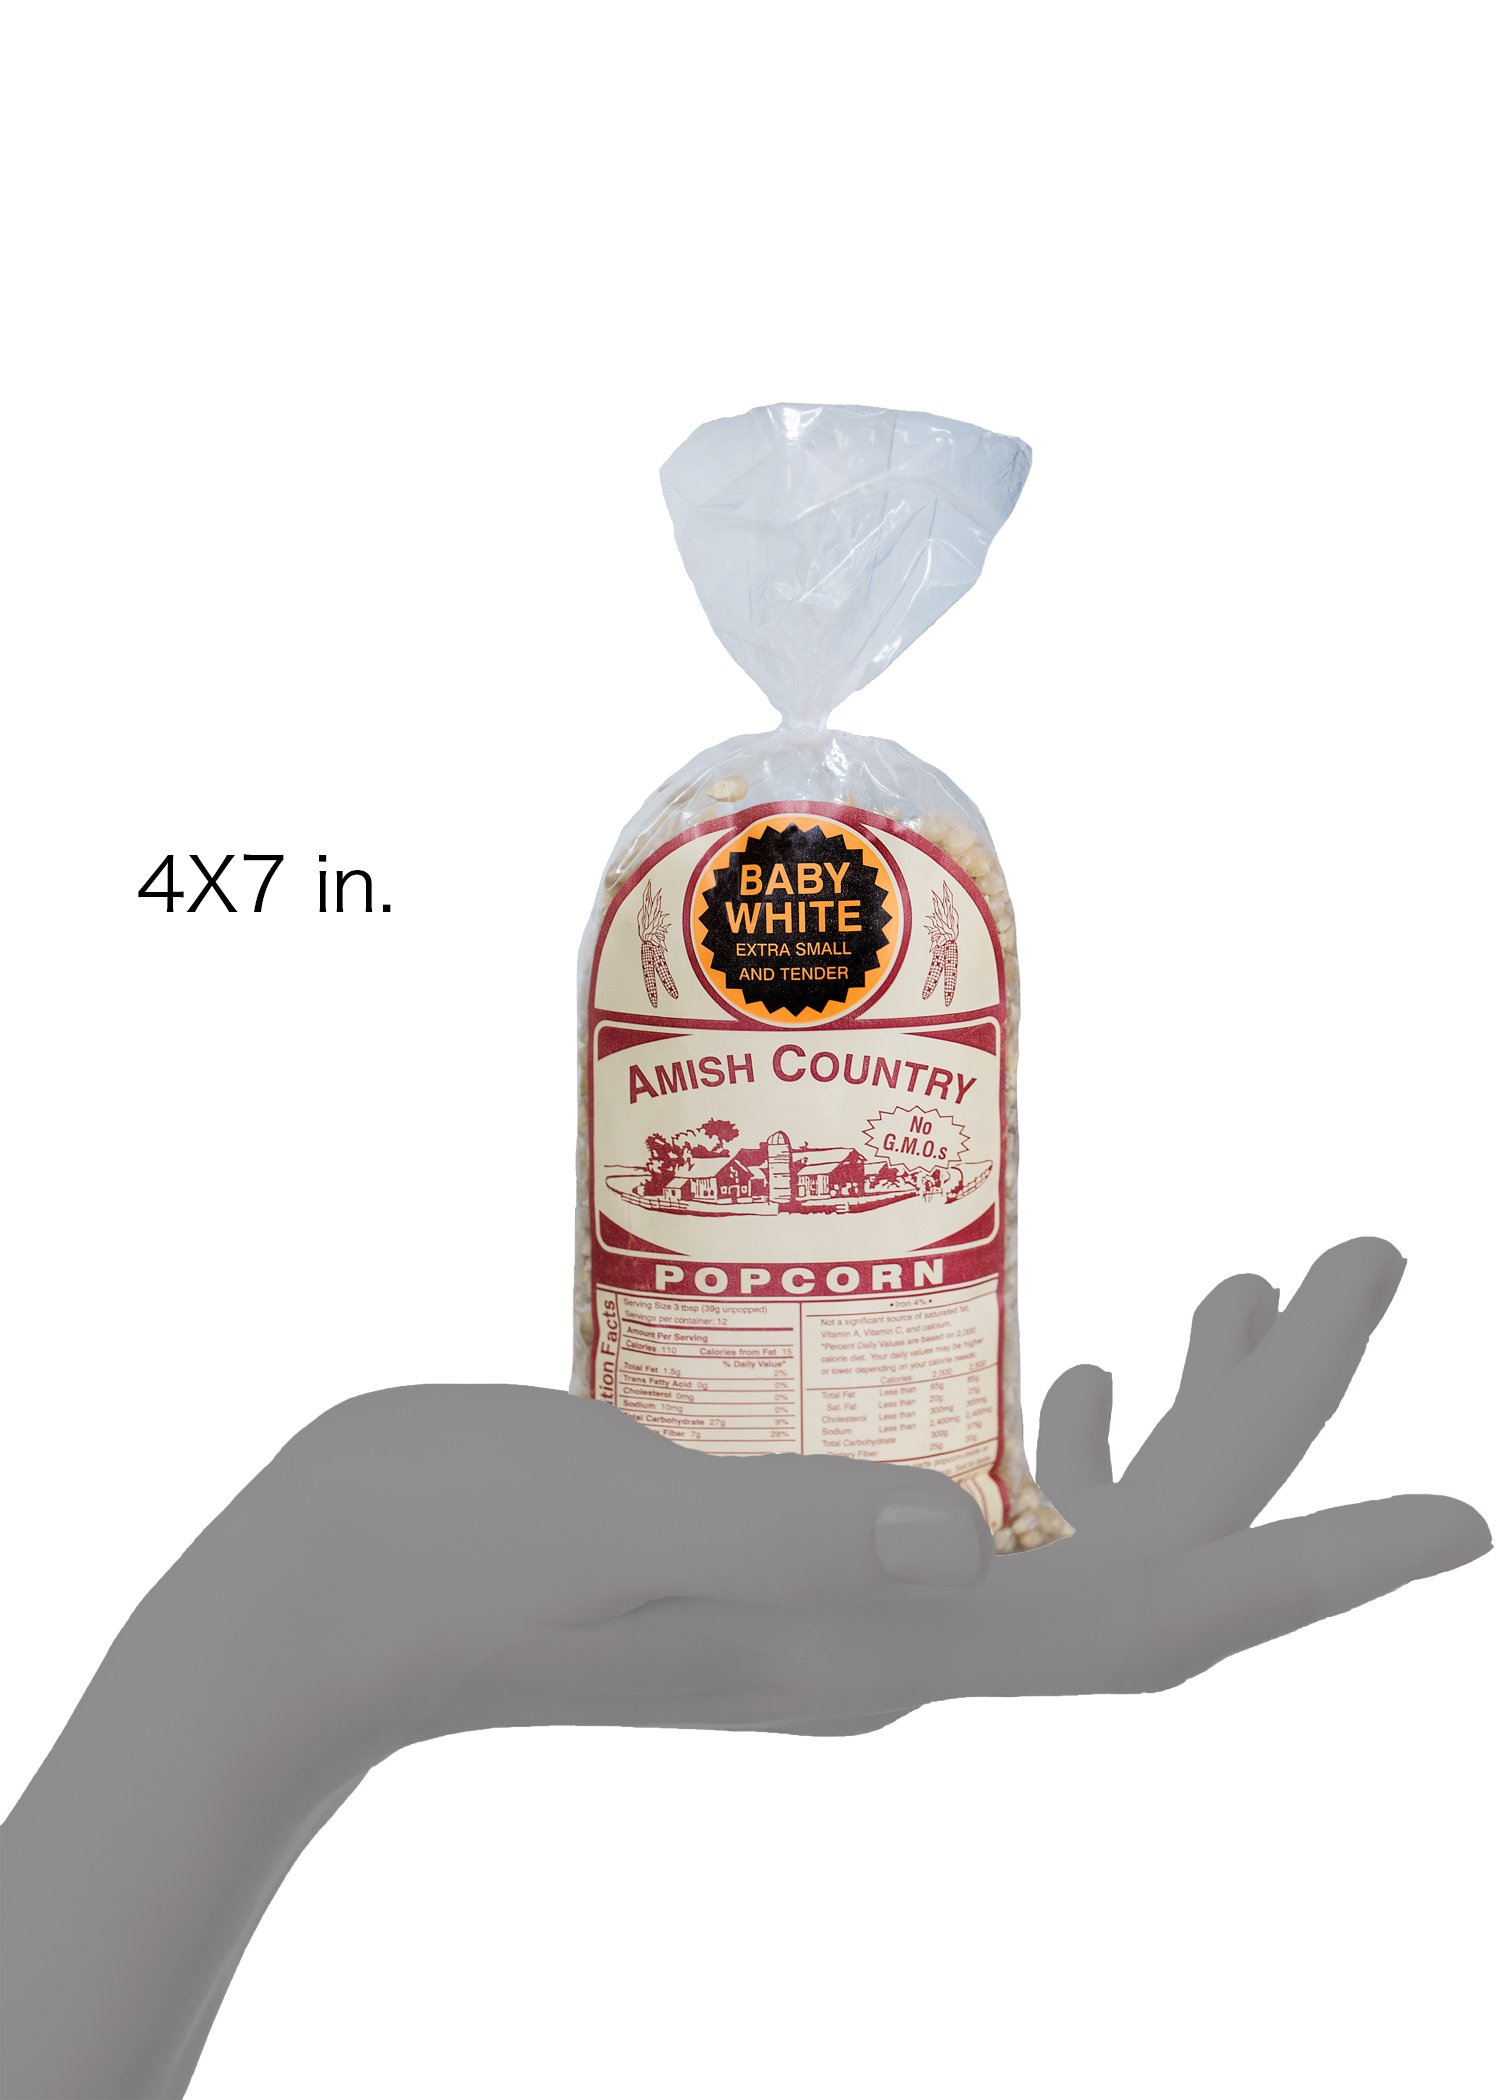 Amish Country Popcorn - Baby White (1 Pound Bag) Small & Tender Popcorn - Old Fashioned And Delicious, with Recipe Guide by Amish Country Popcorn (Image #6)